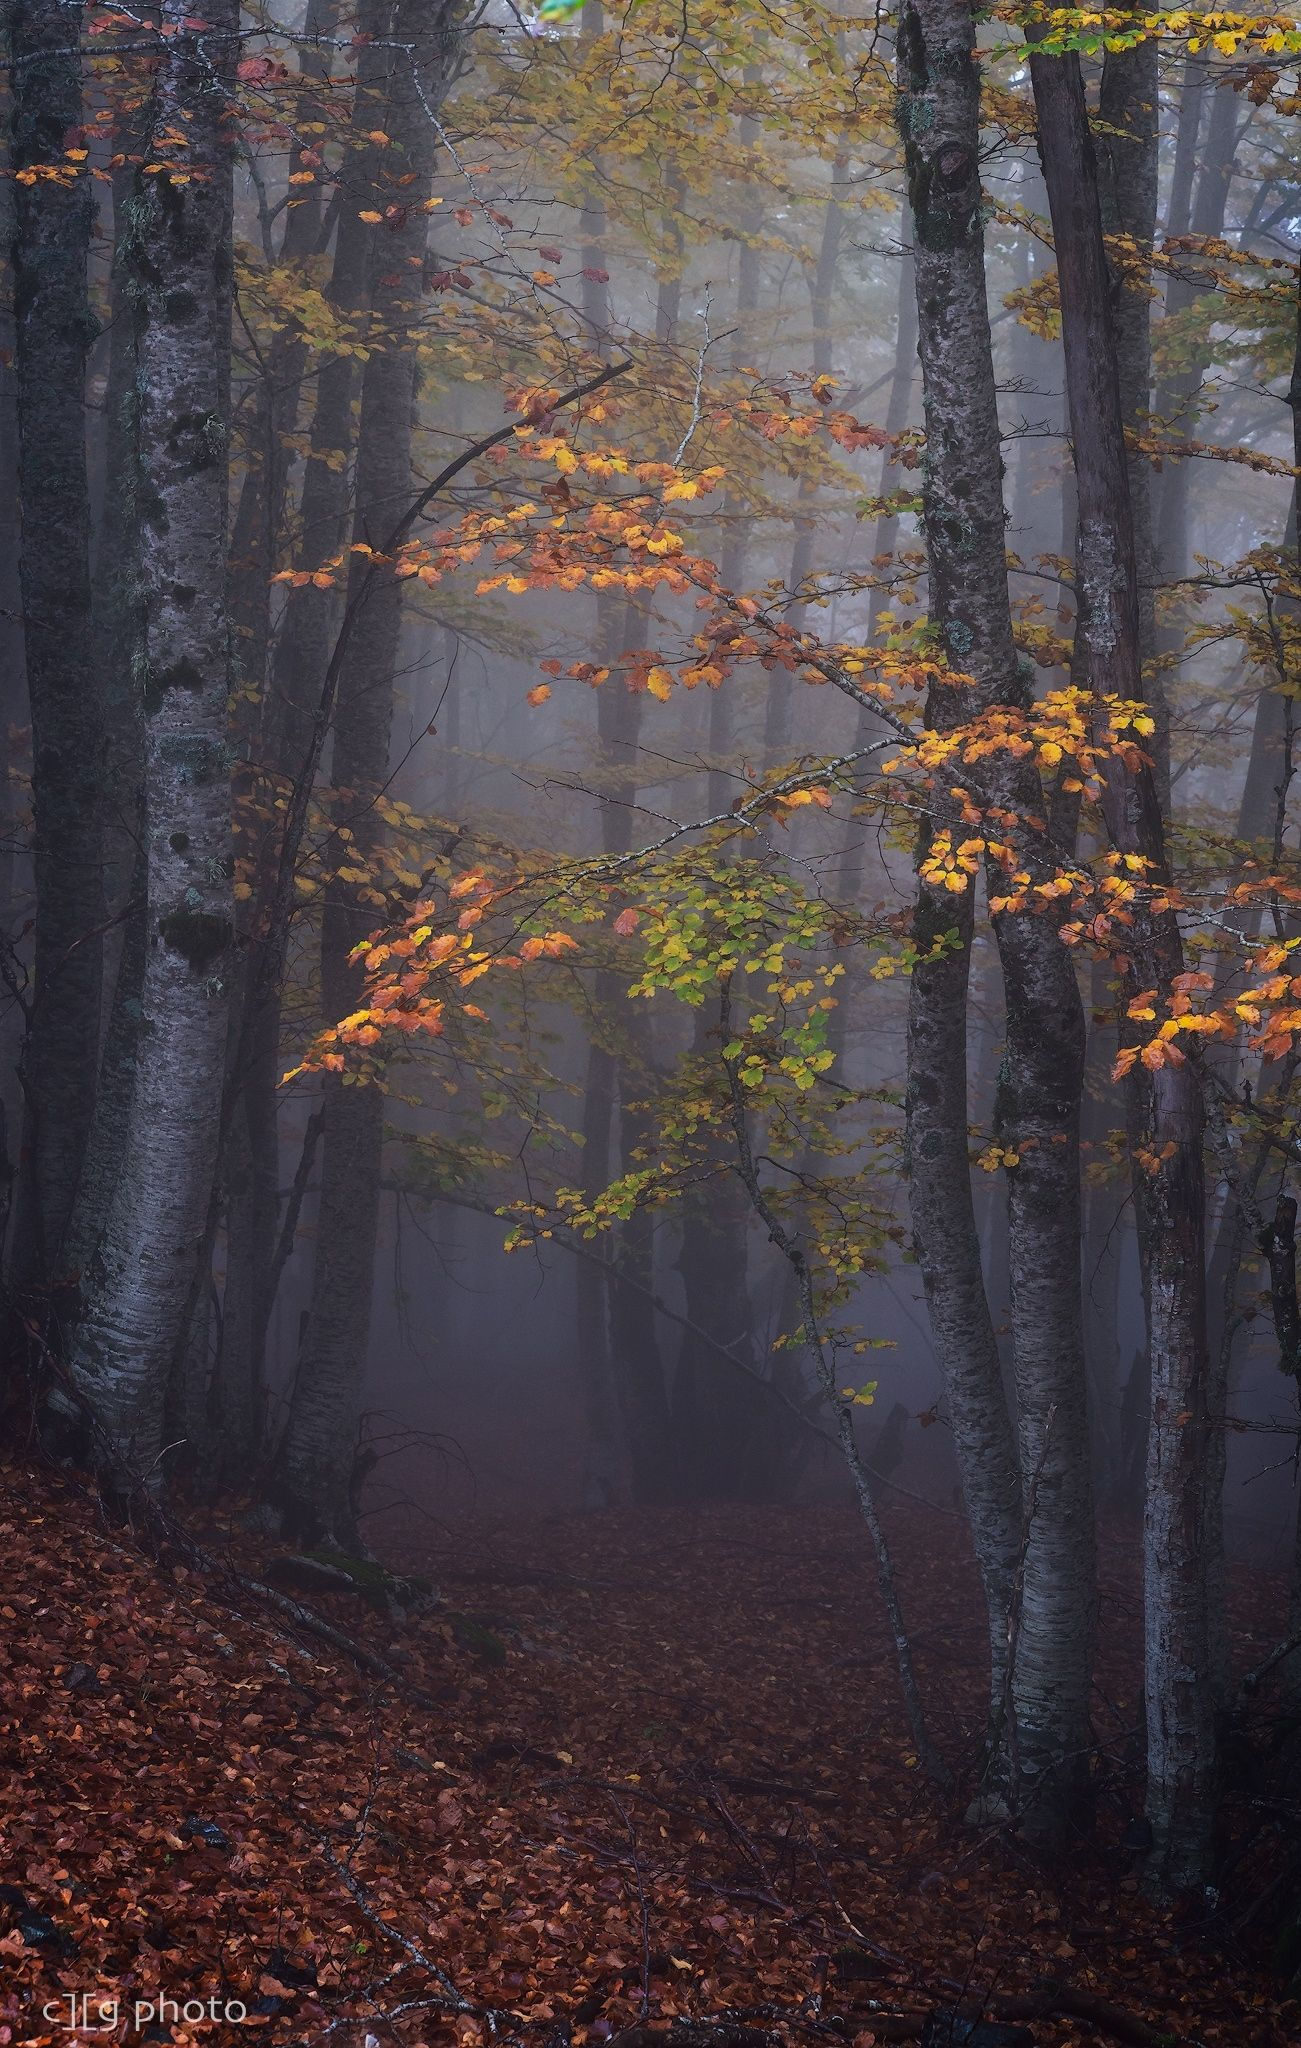 In the forest - Pindous National Park (Valia Calda)